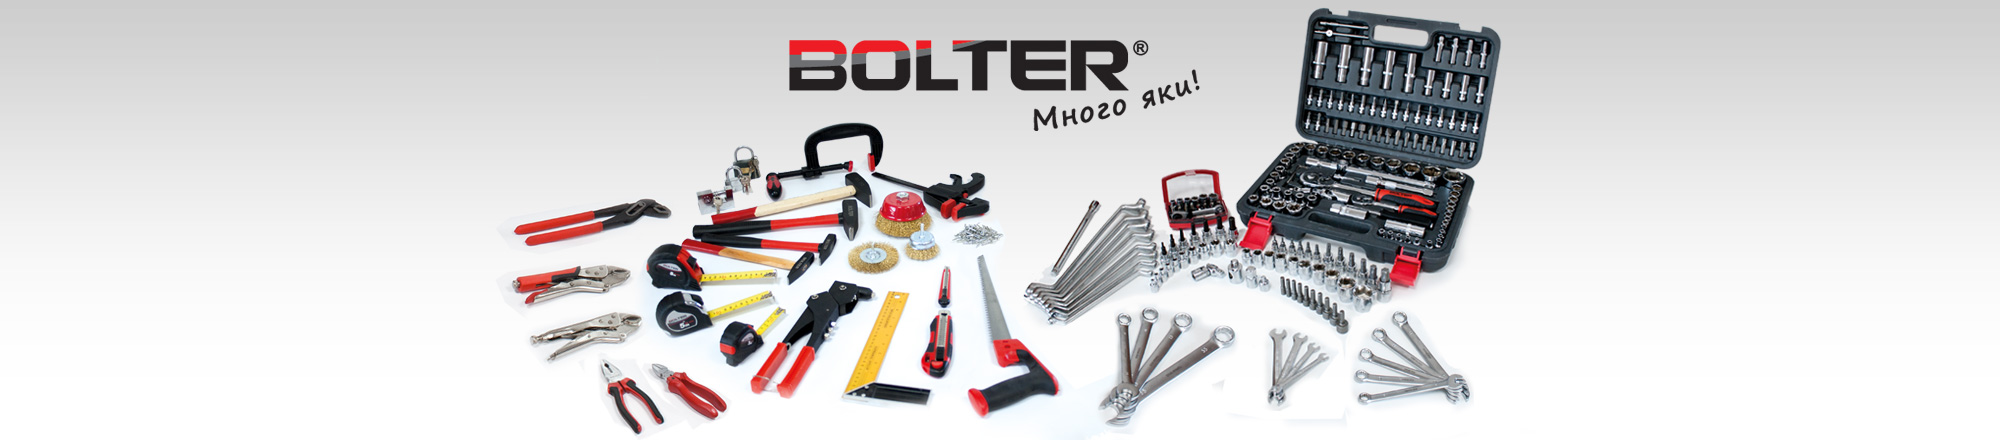 bolter hand tools